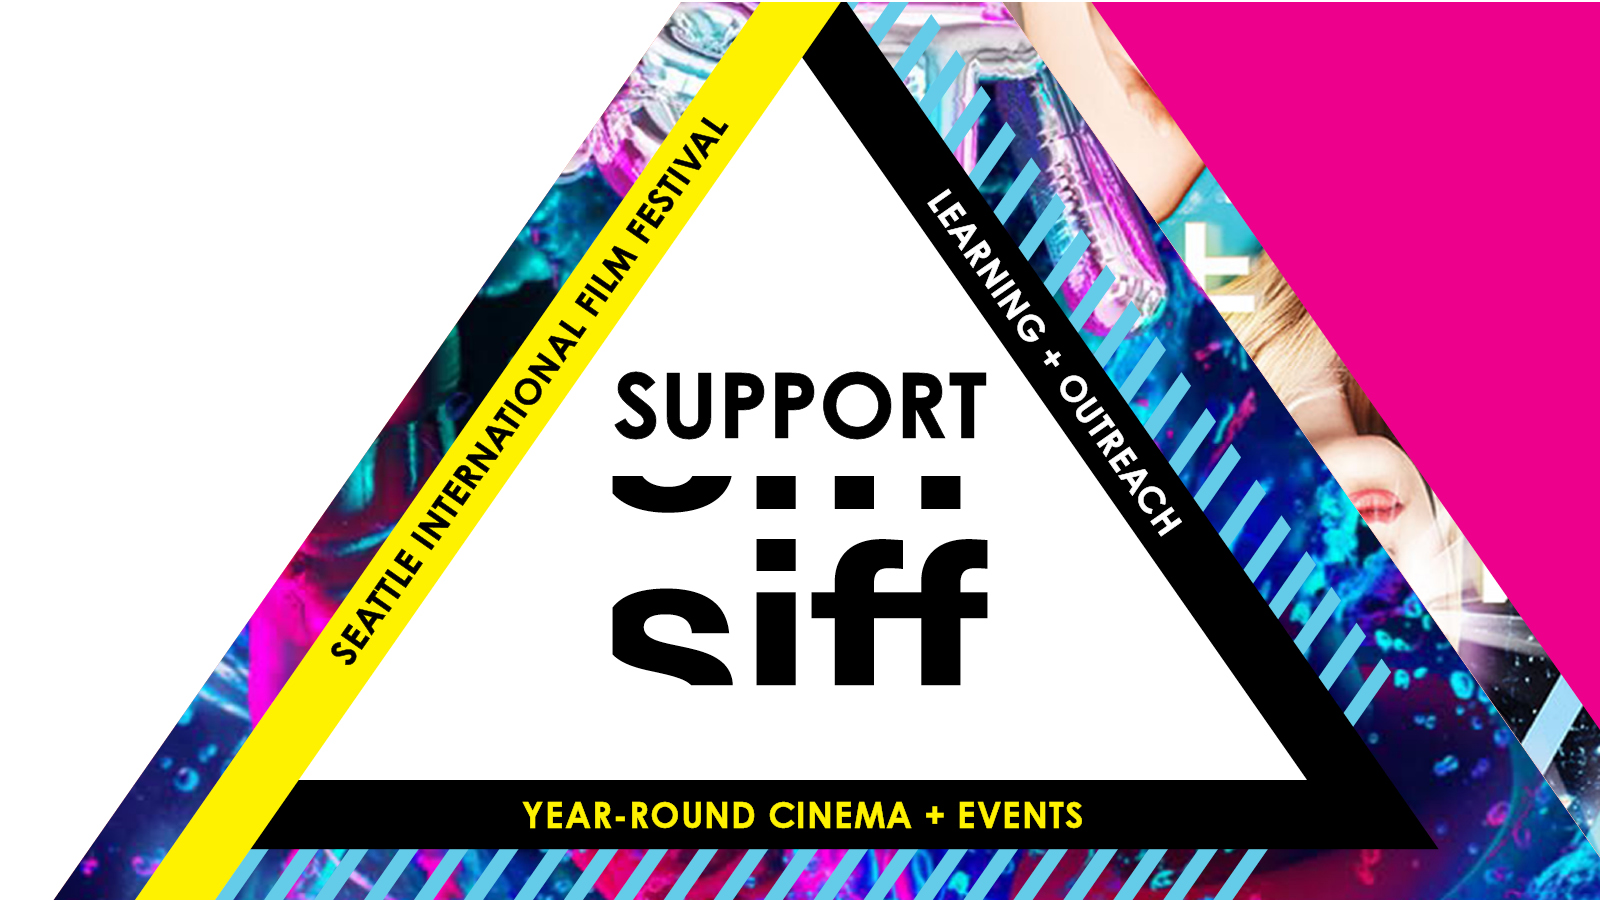 Support SIFF